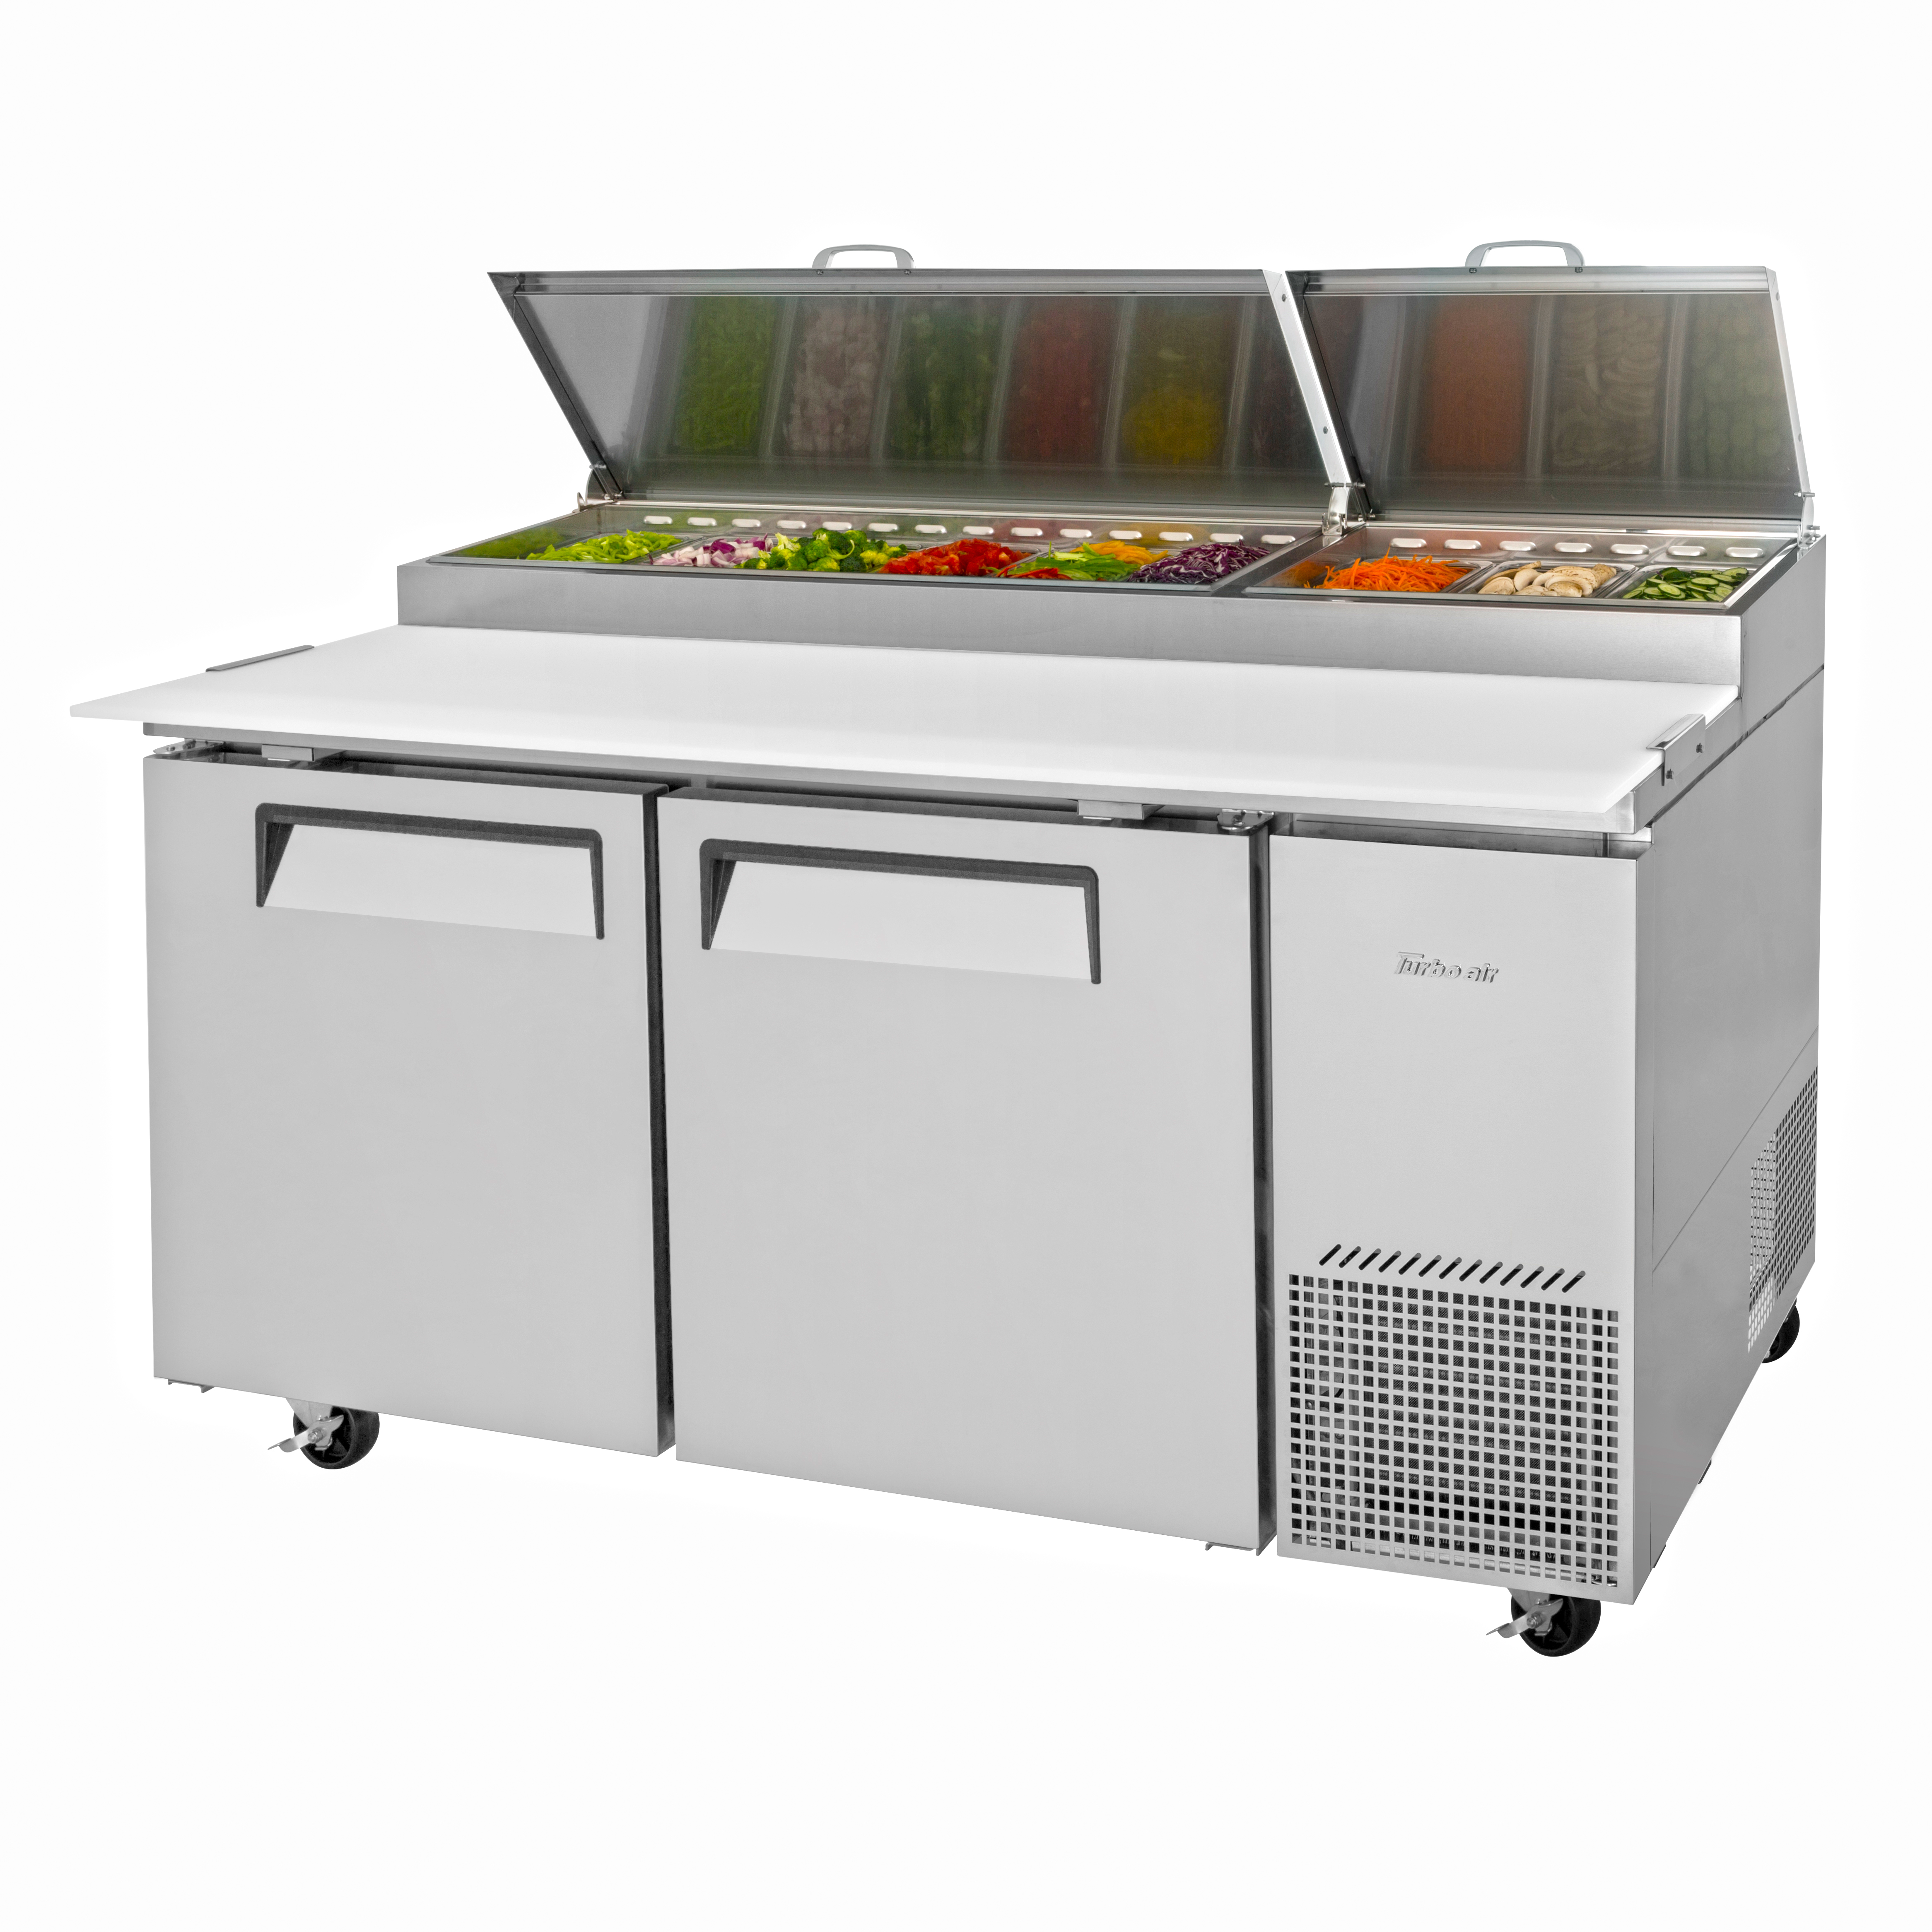 Turbo Air TPR-67SD-N refrigerated counter, pizza prep table